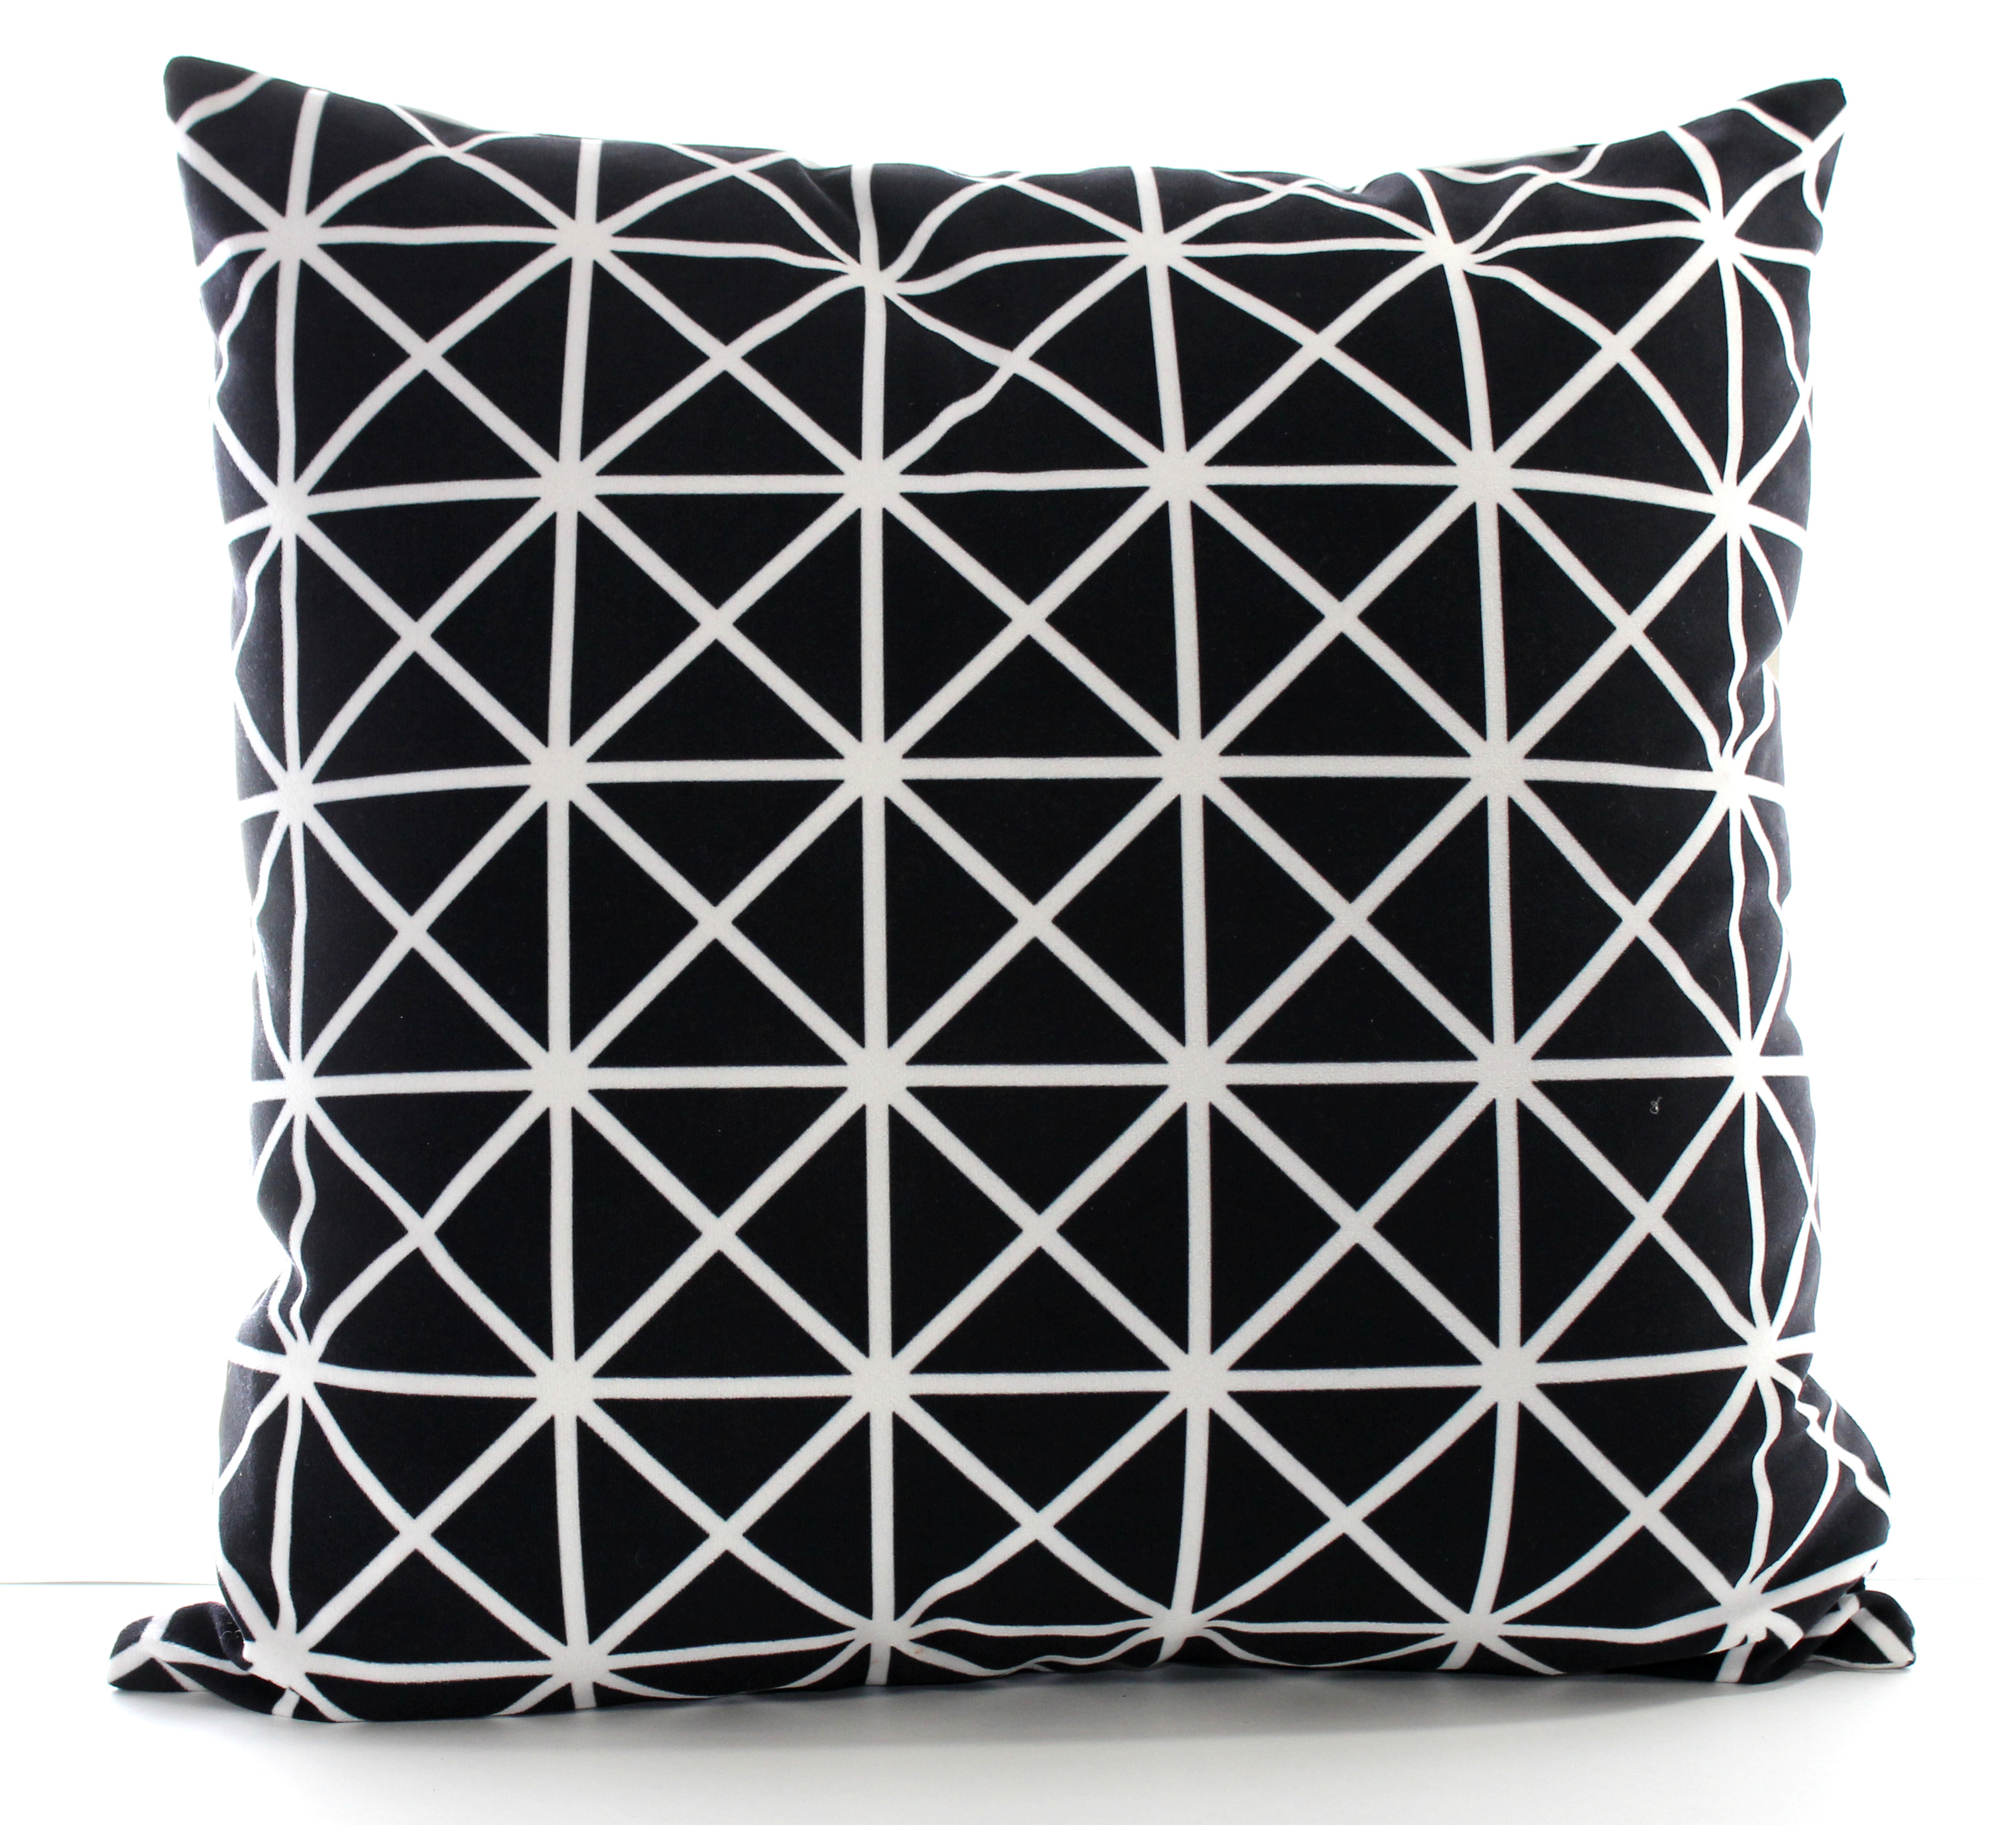 Pure Black and White Cushion Cover. Set of 2.